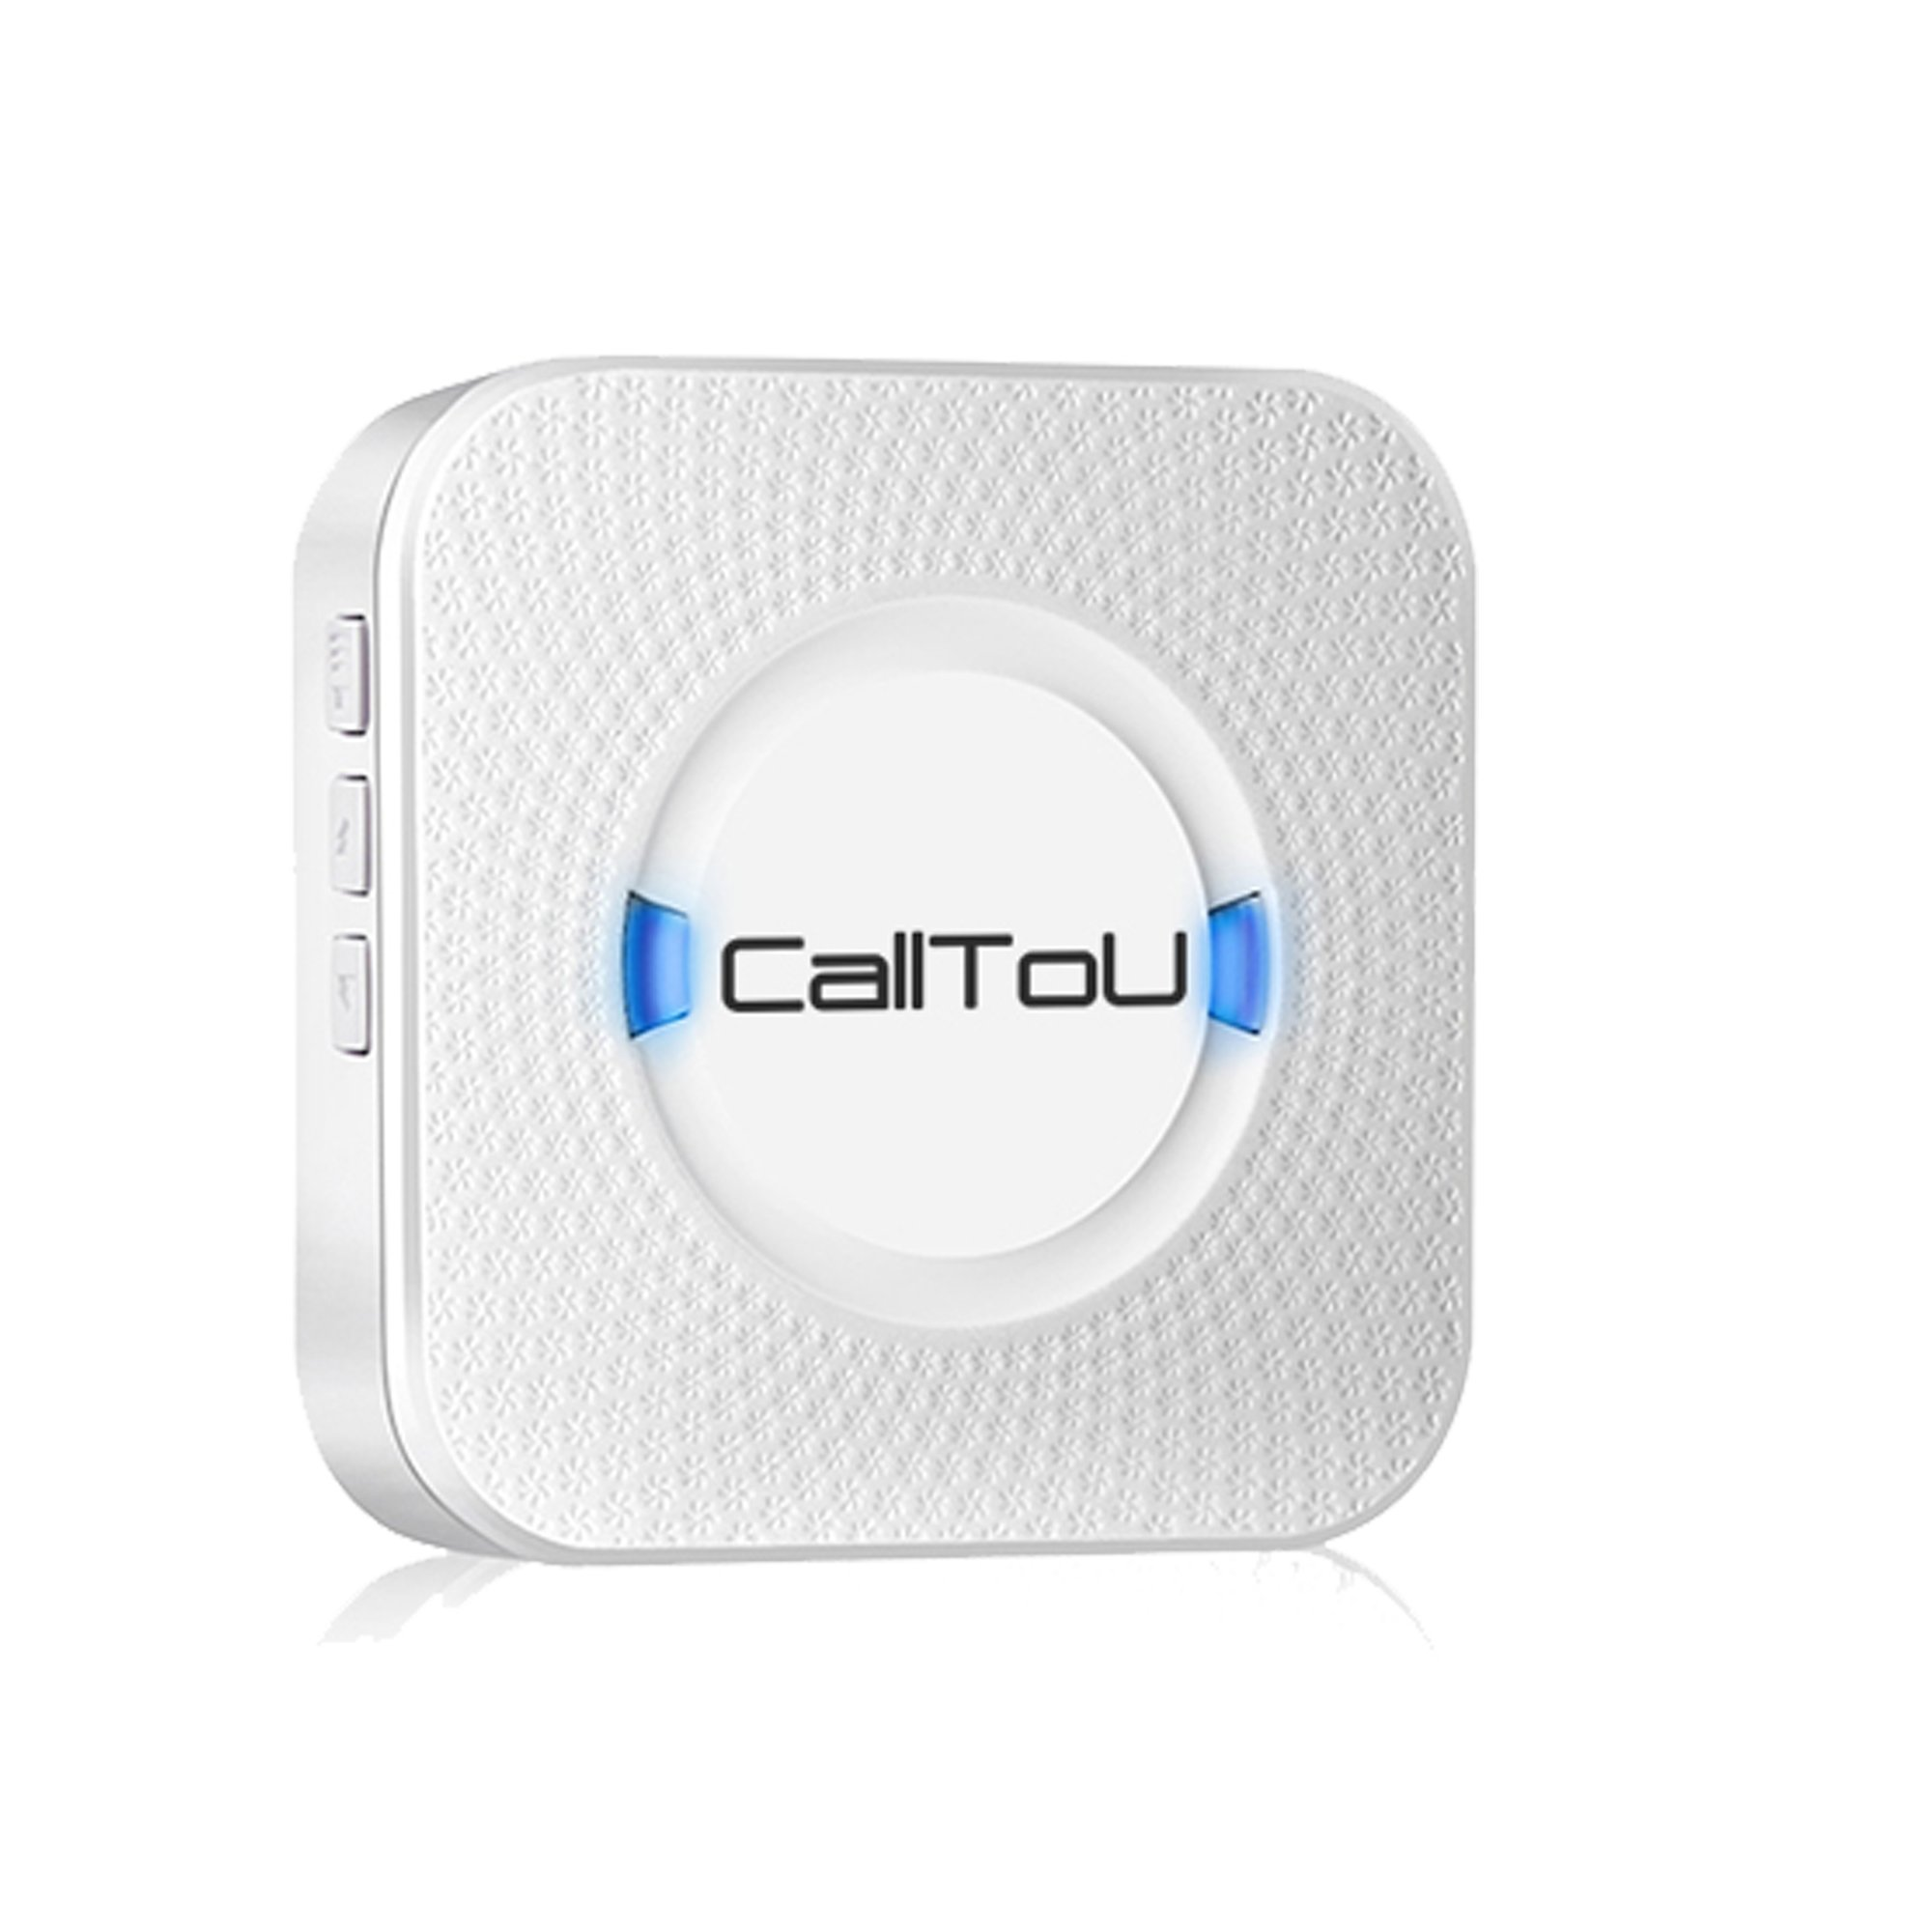 CallToU Wireless Caregiver Pager Call System for Elderly Door Entrance Chime Entry Alarm For Home, Business, shop, Apartment, Office 1 Receiver(Need to Be Paired with CallToU Transmitter to Work)